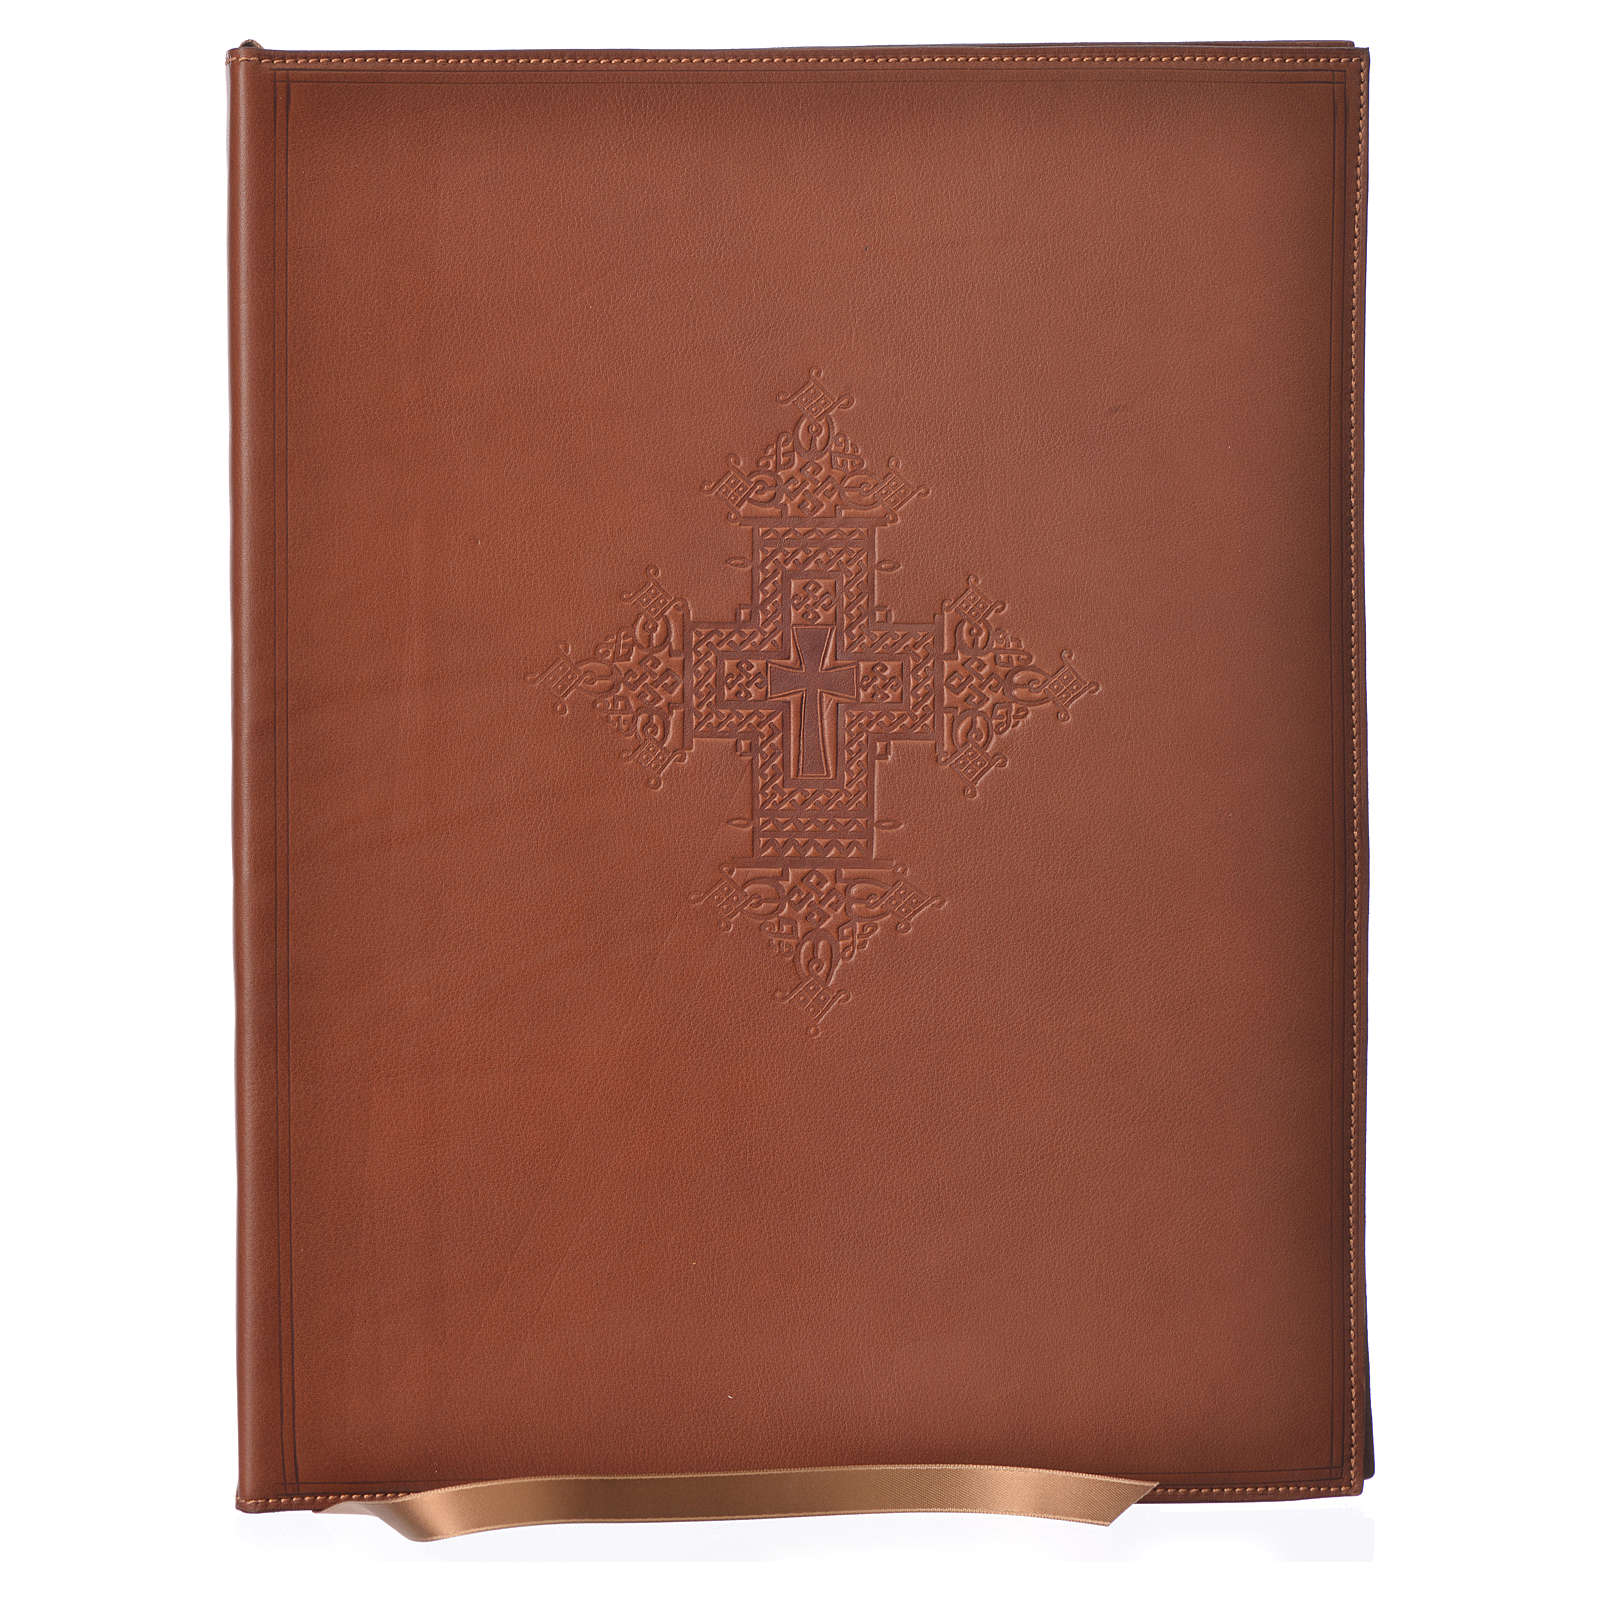 Folder for Sacred Rites in Brown Leather with Hot pressed Cross Bethleem, A4 size 4